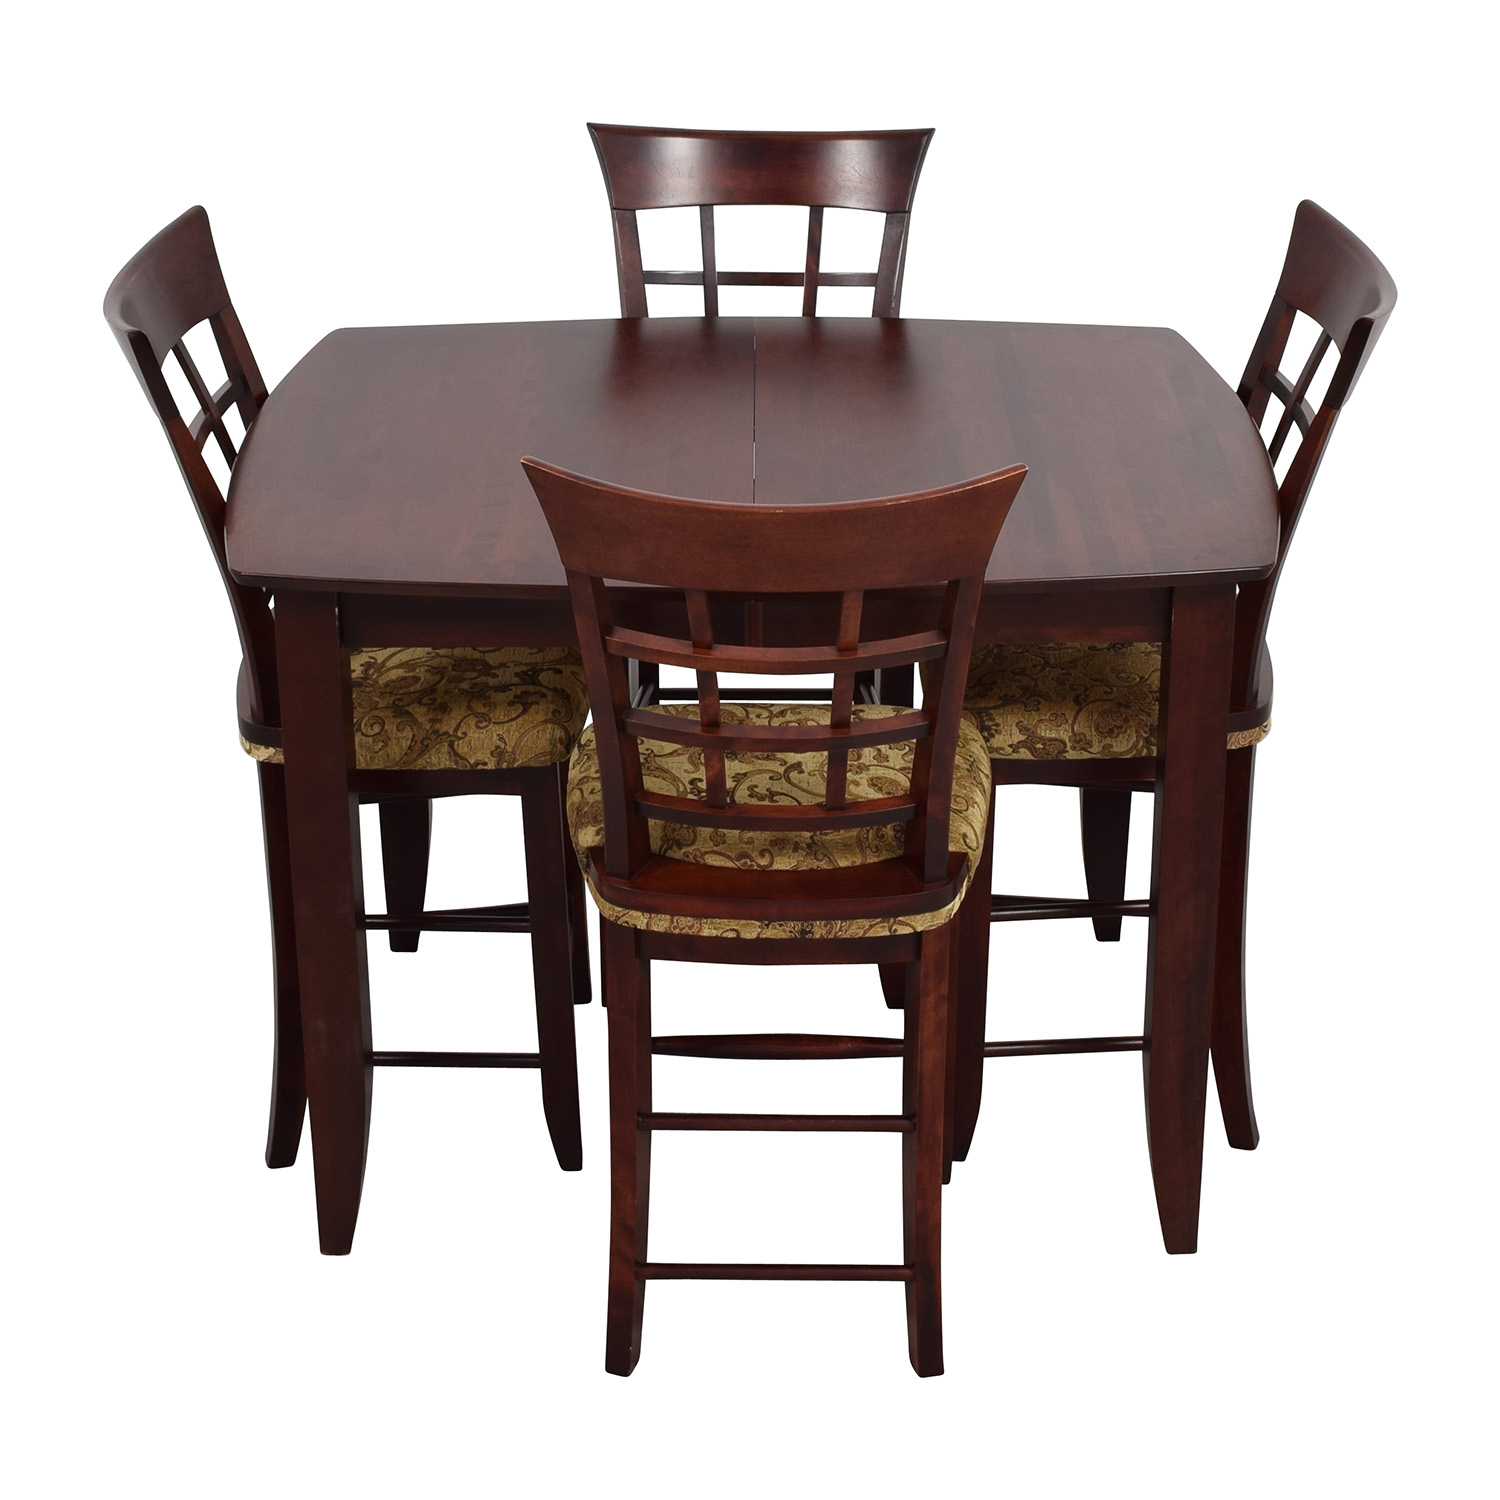 90 off skovby skovby sm 24 dining table with butterfly for High top dinette sets